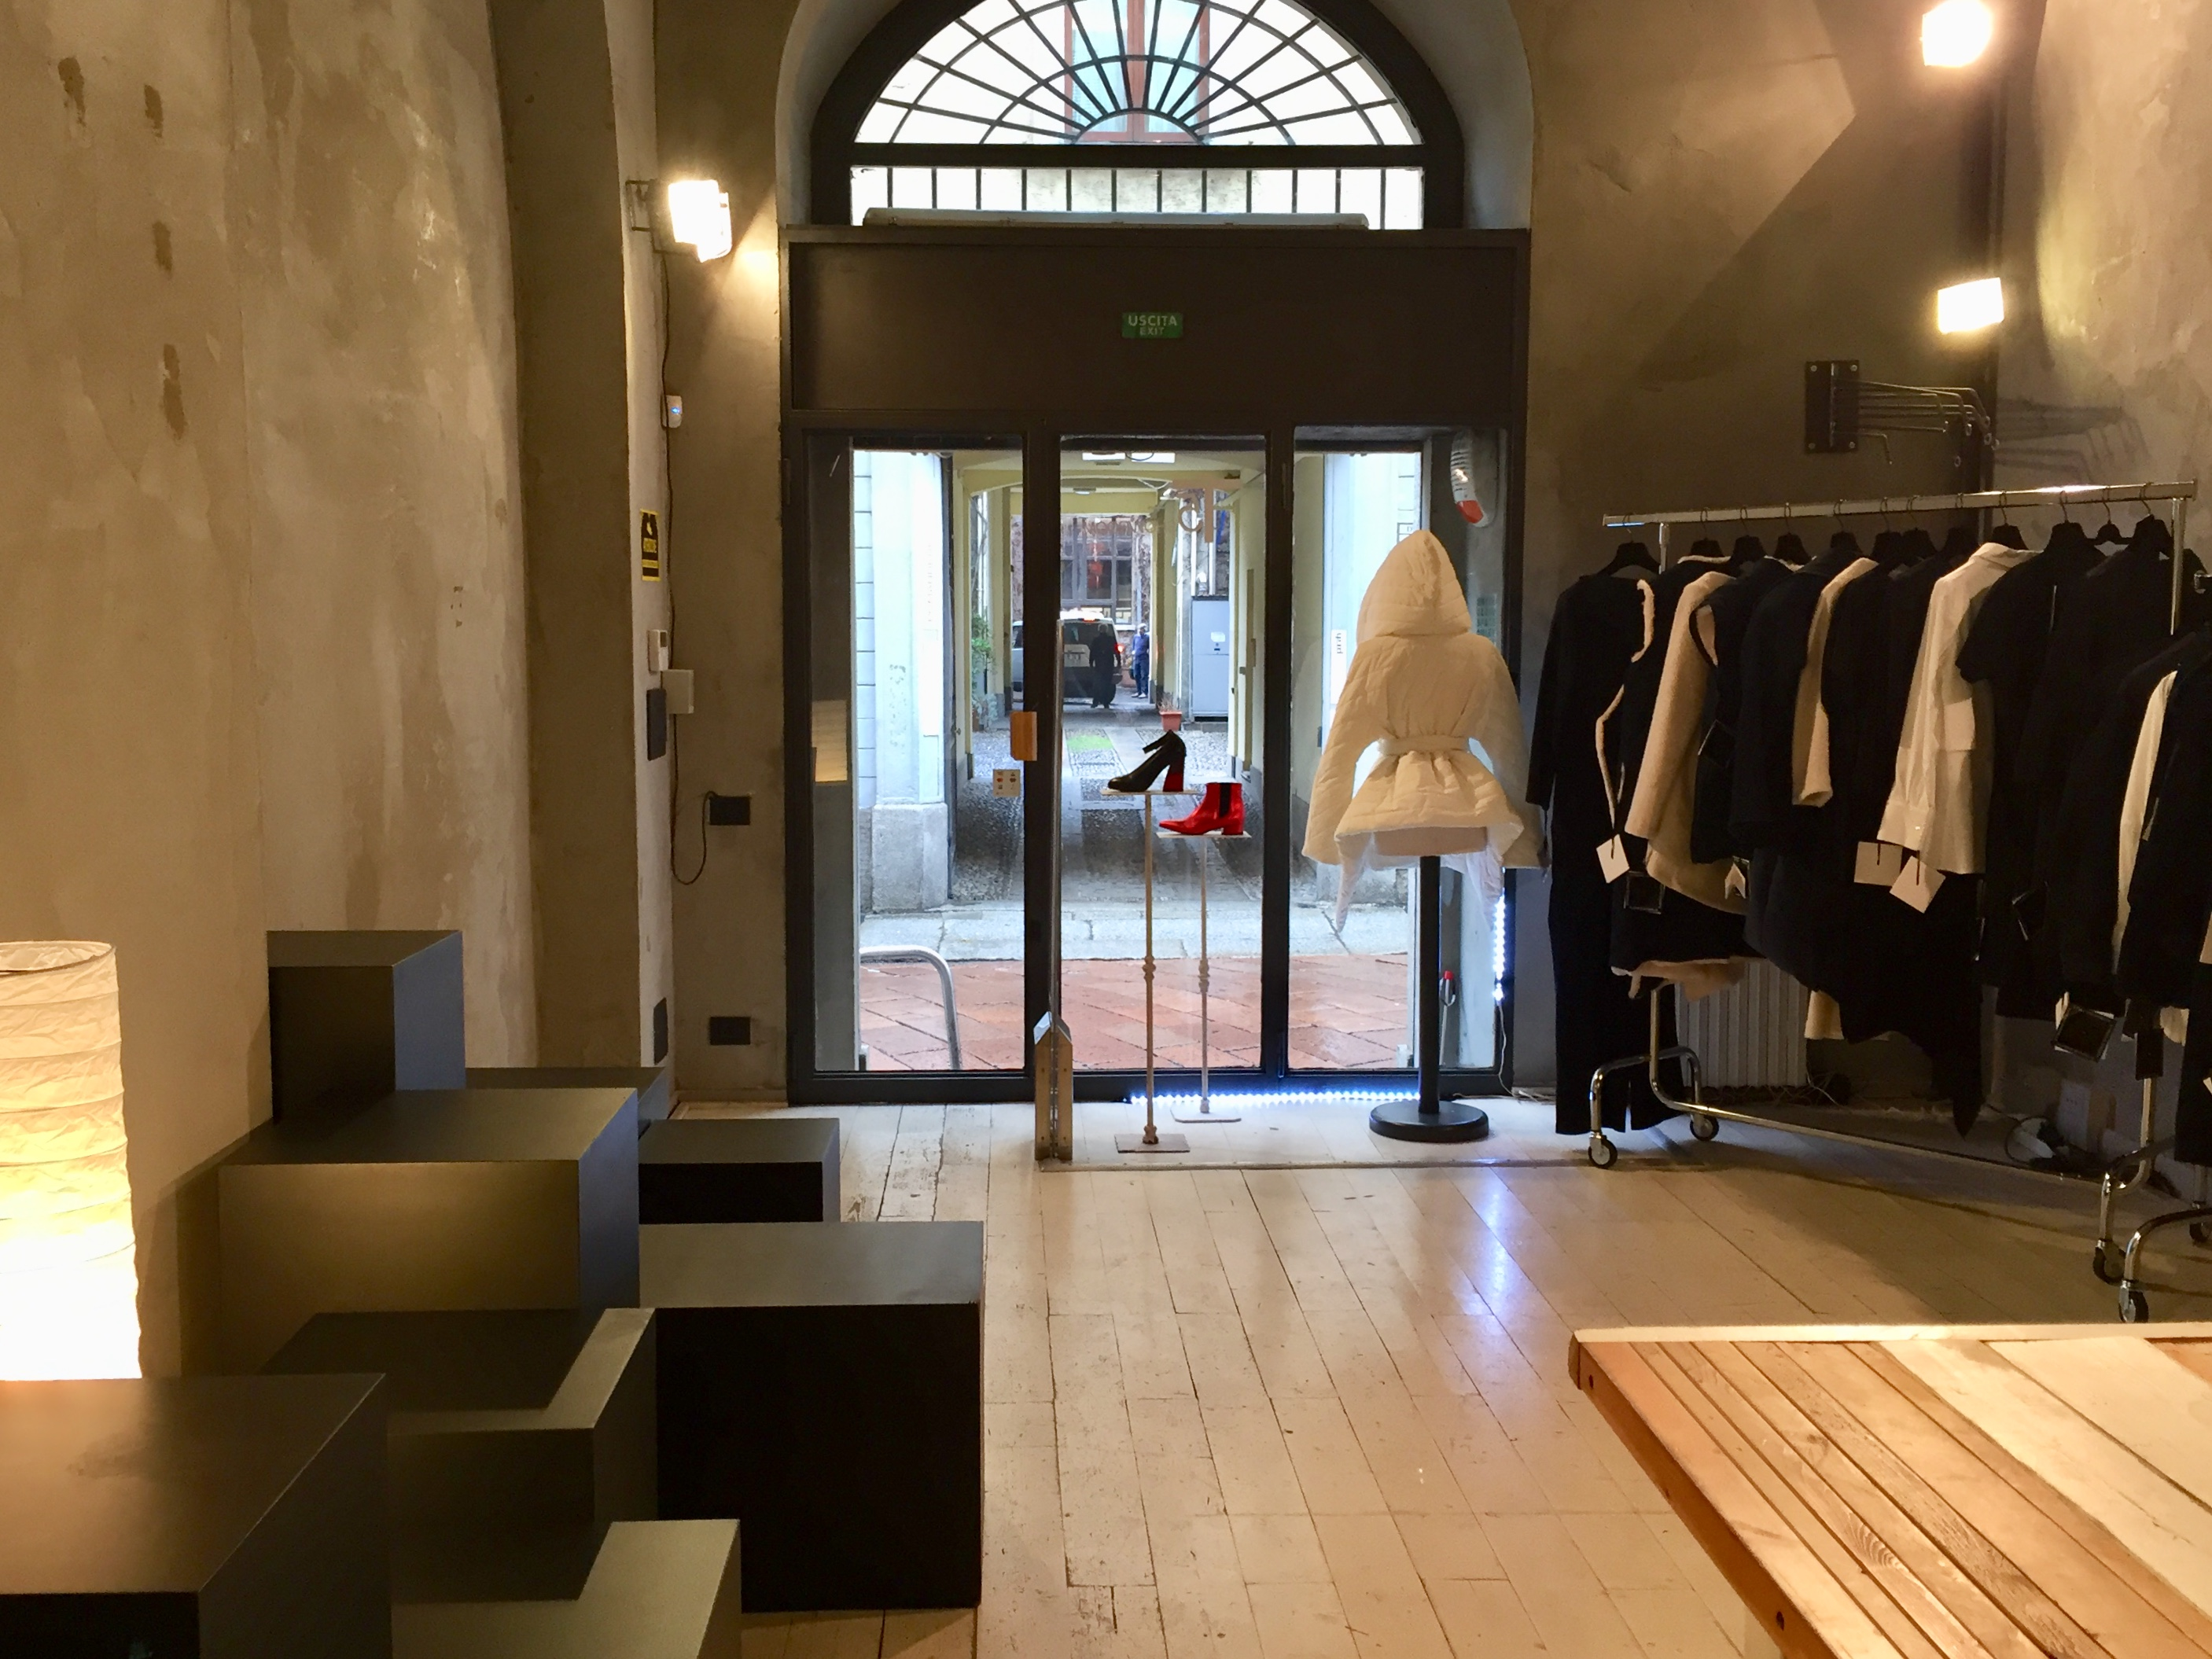 Tortona 5 - Loft, Negozio, Showroom di 50mq in Via Tortona 5 | location allestita 13